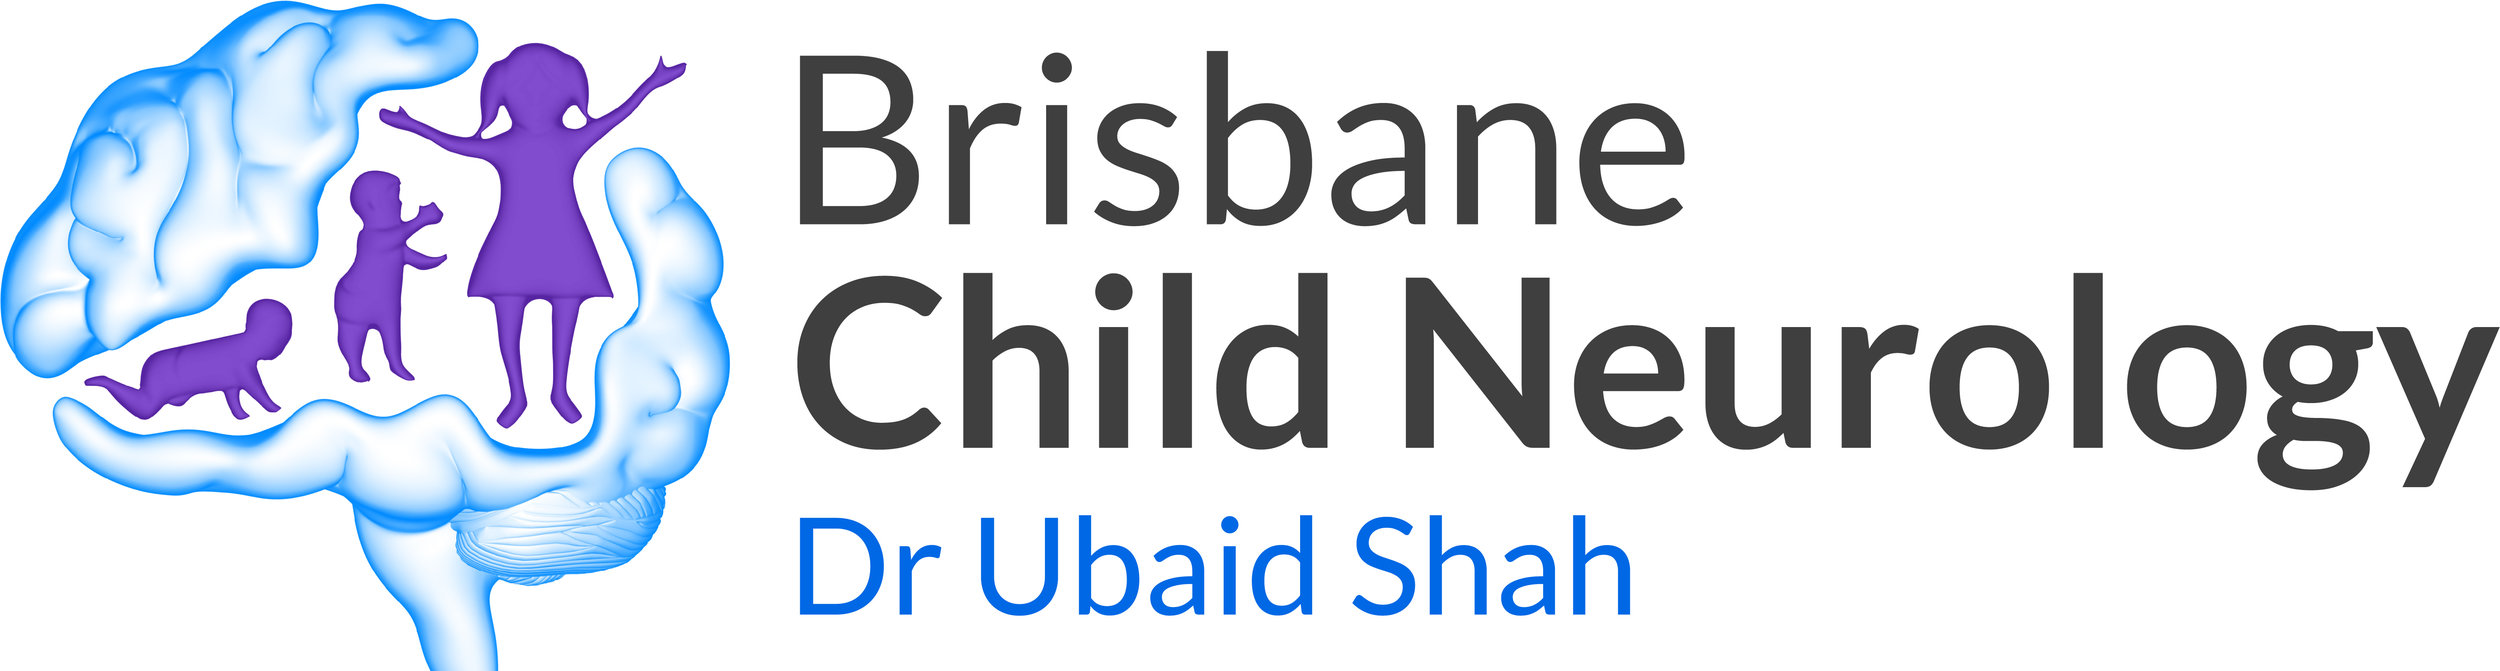 child-neurology_logo + name.jpg